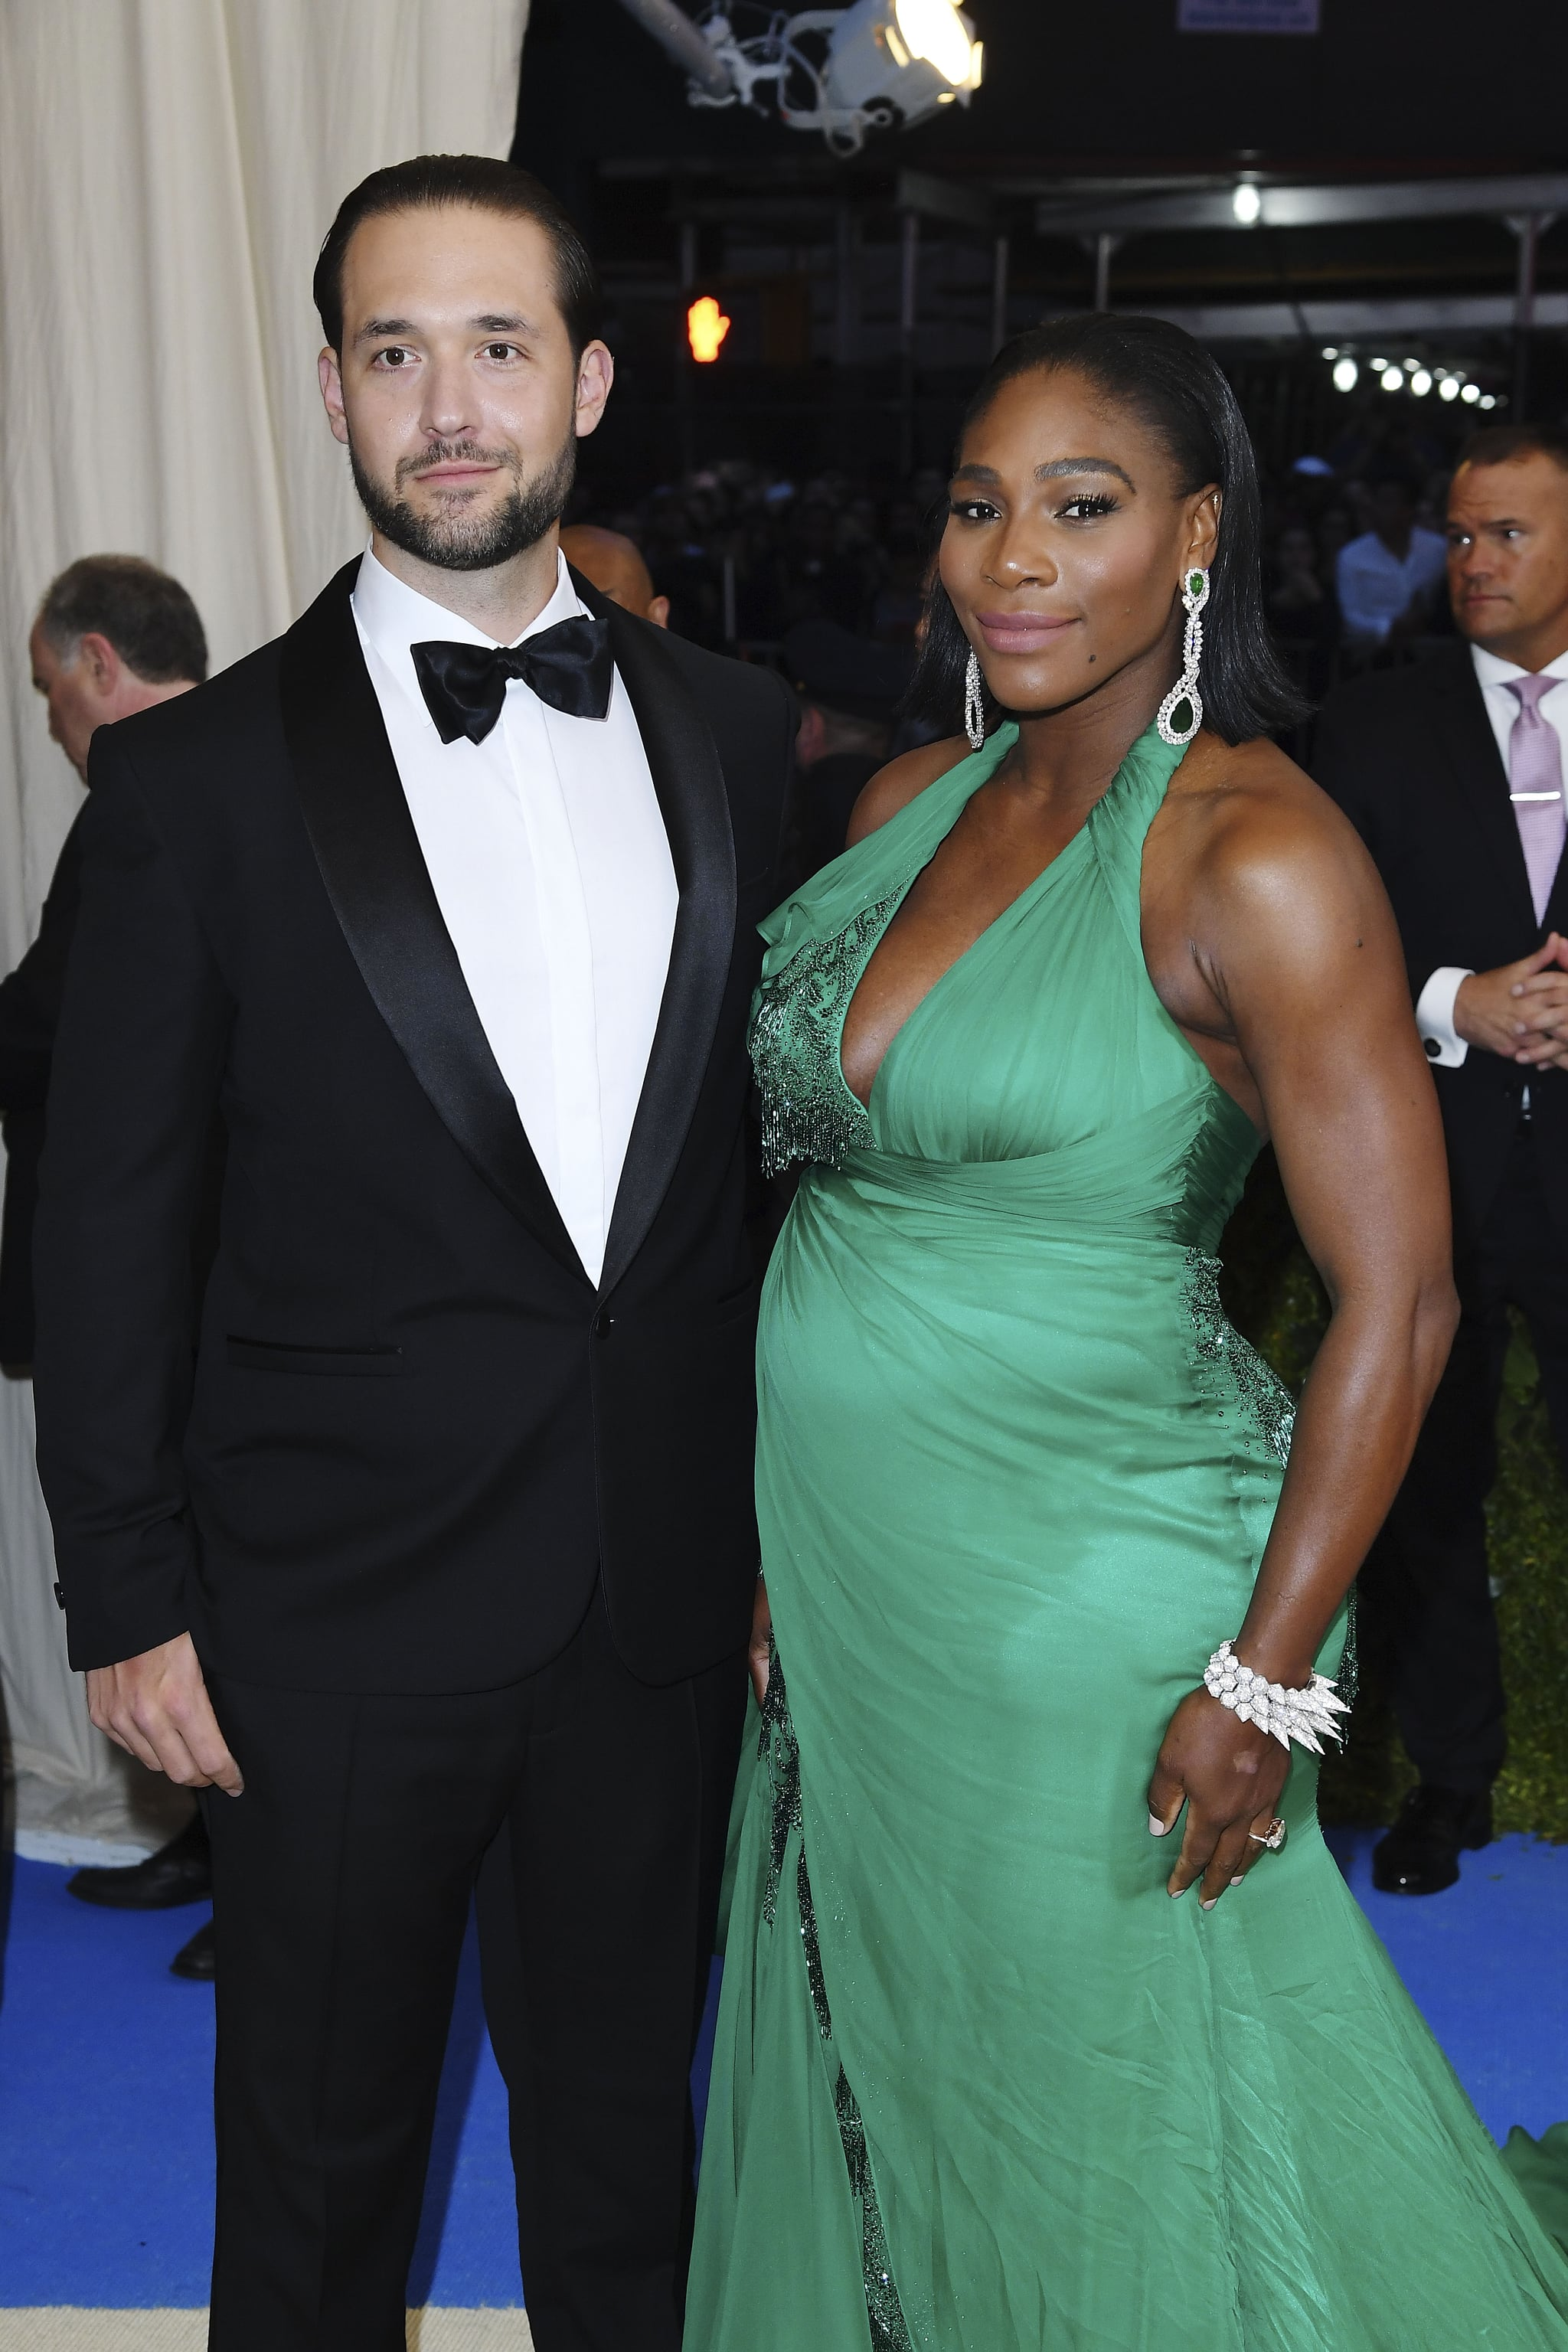 Whos dating serena williams